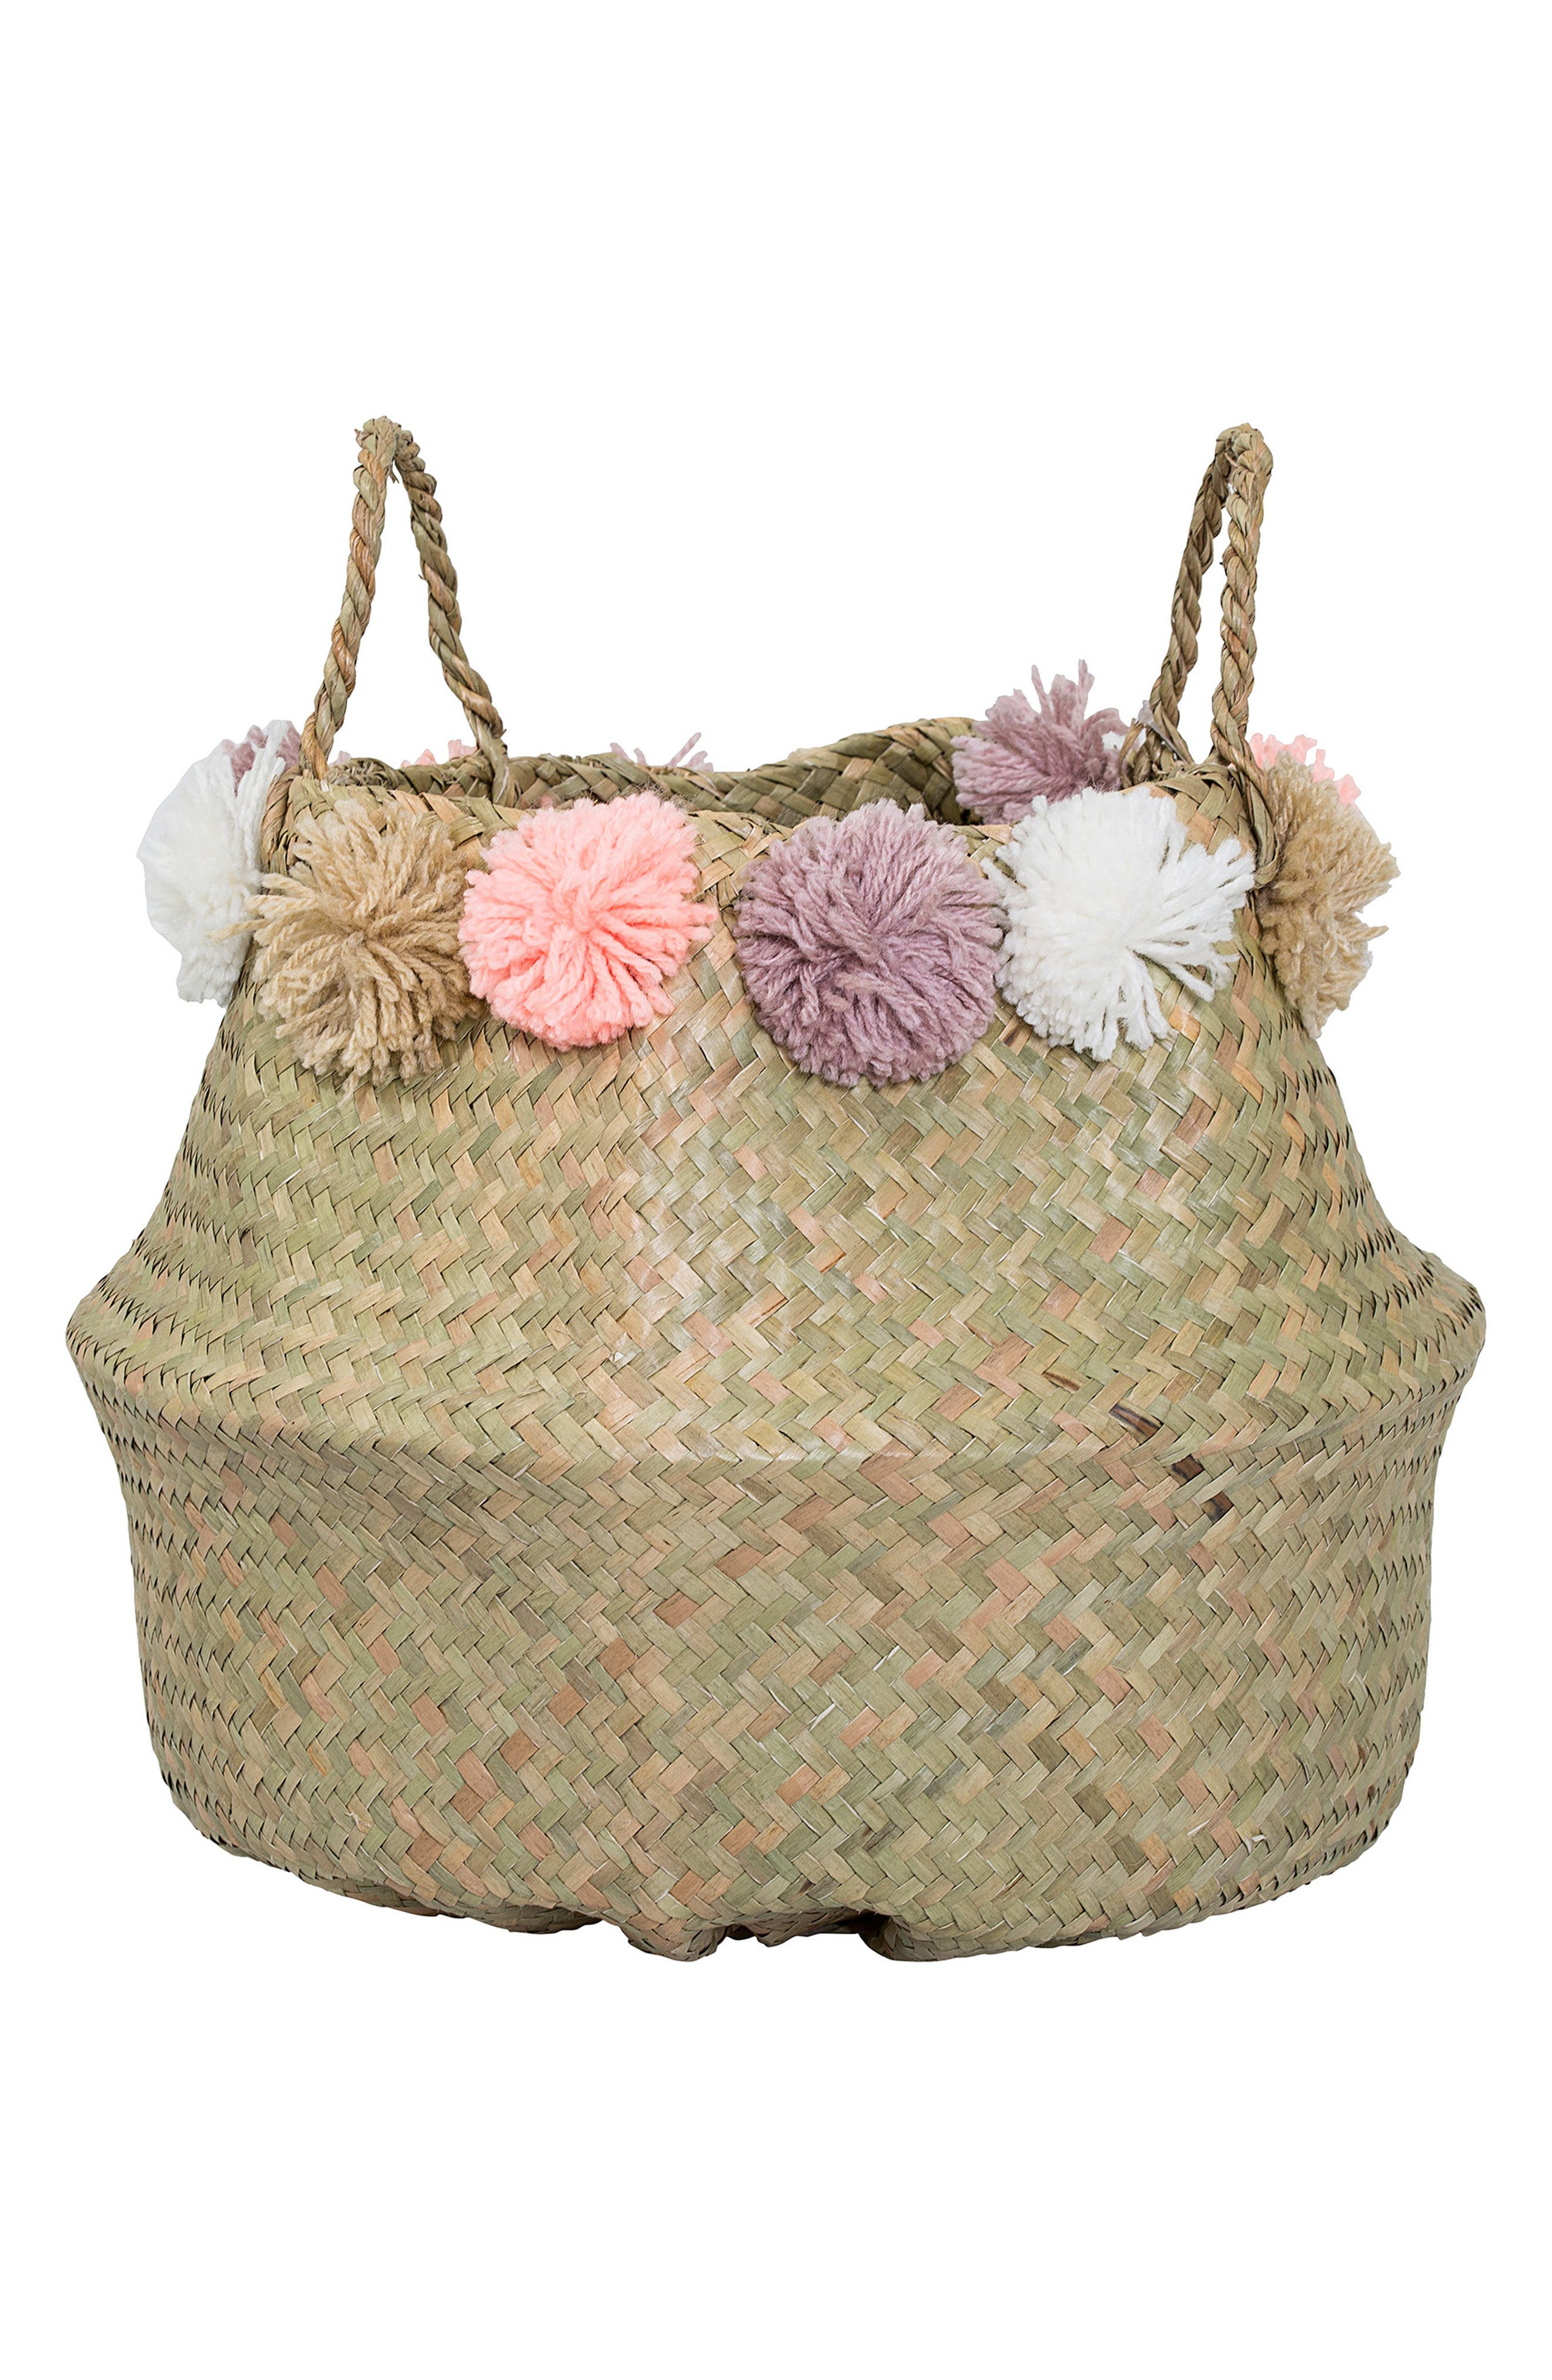 Seagrass Basket,                             Main thumbnail 1, color,                             250